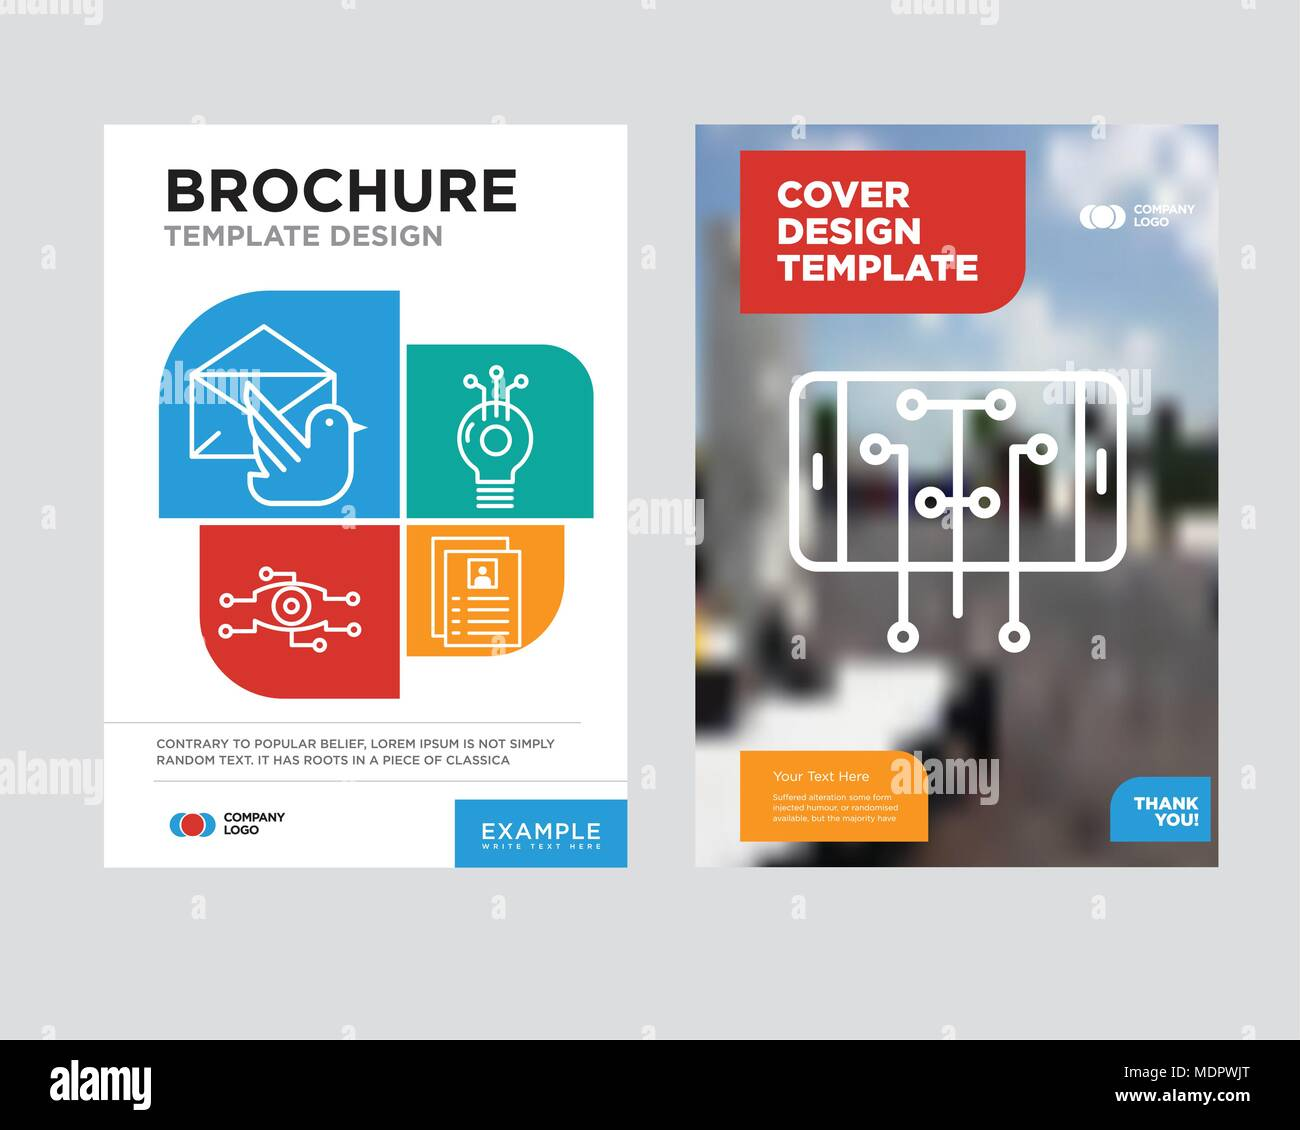 smartphone brochure flyer design template with abstract photo